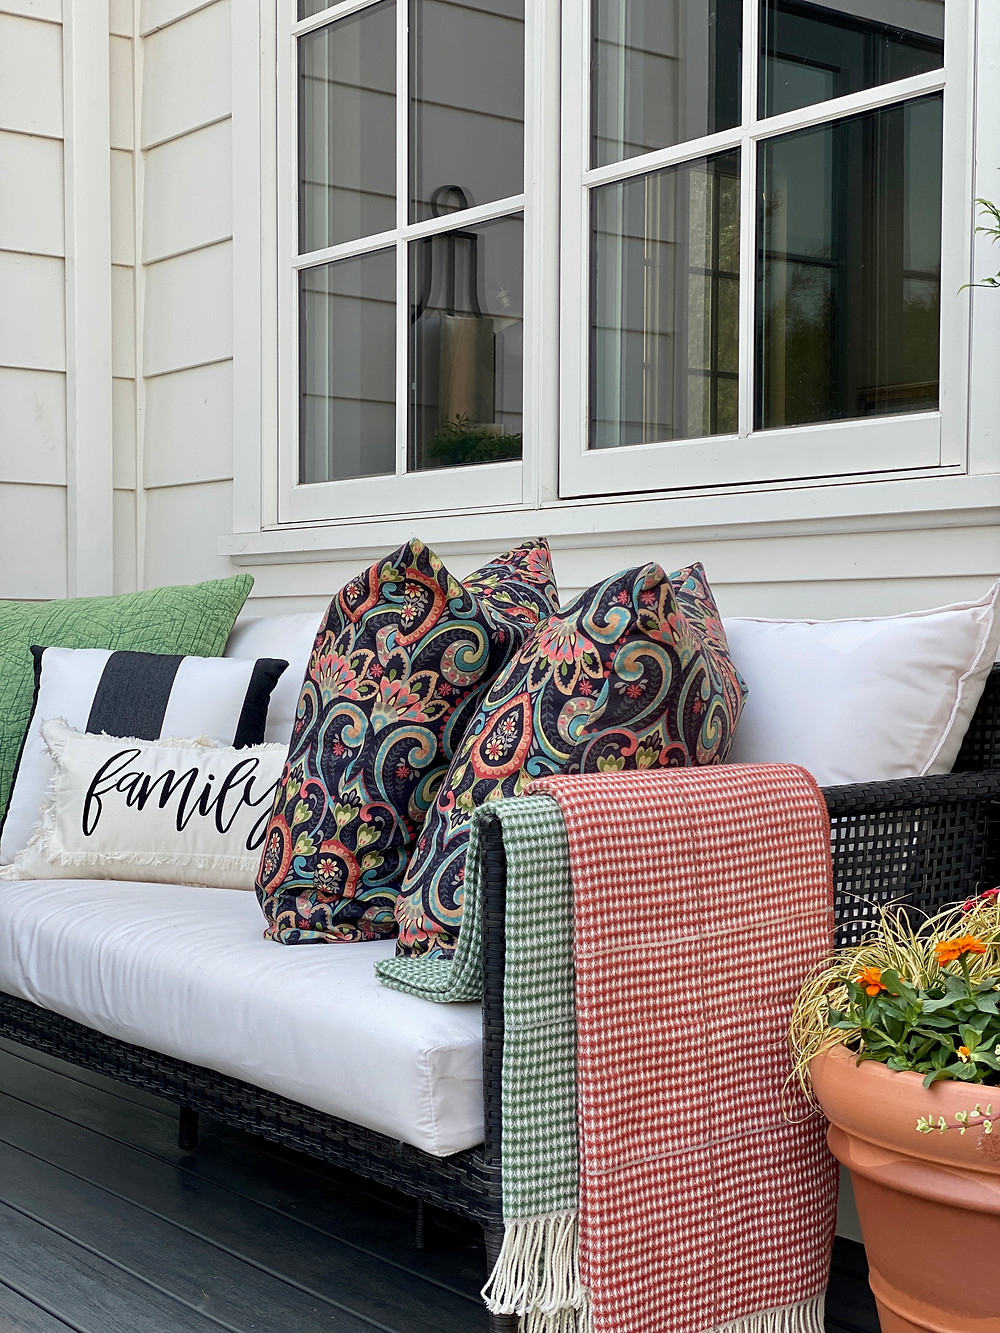 Outdoor seating area styled for Fall.